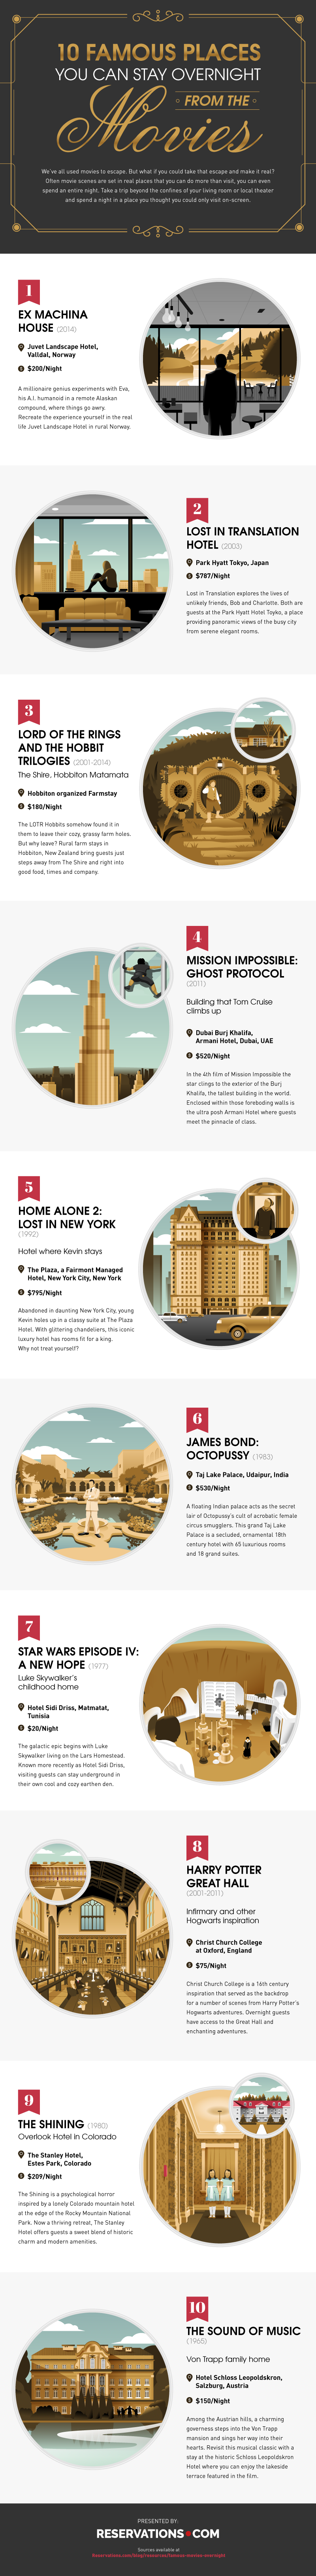 Famous Places from Movies 72dpi.png